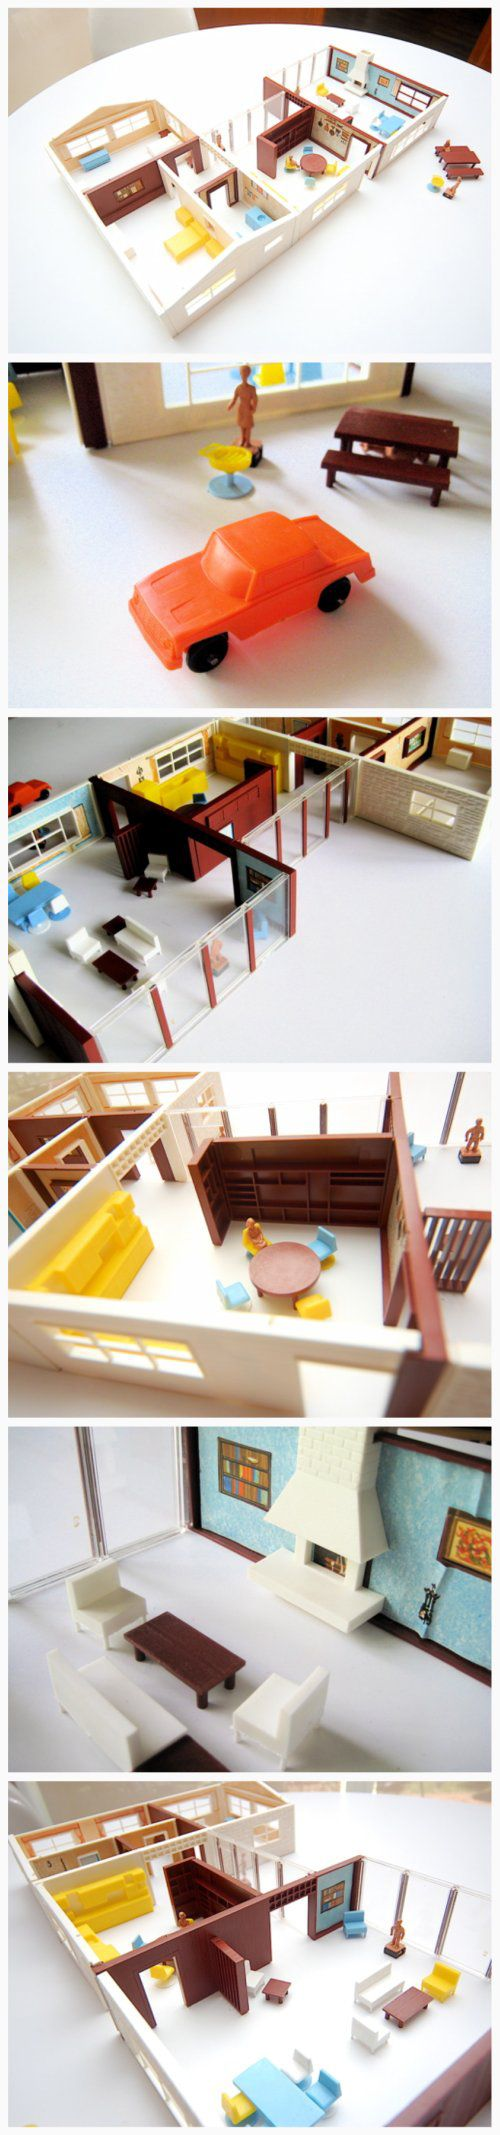 "Mid-Century Modern Ranch Dollhouse (""Magnetic Doll House"" by Child Guidance)"